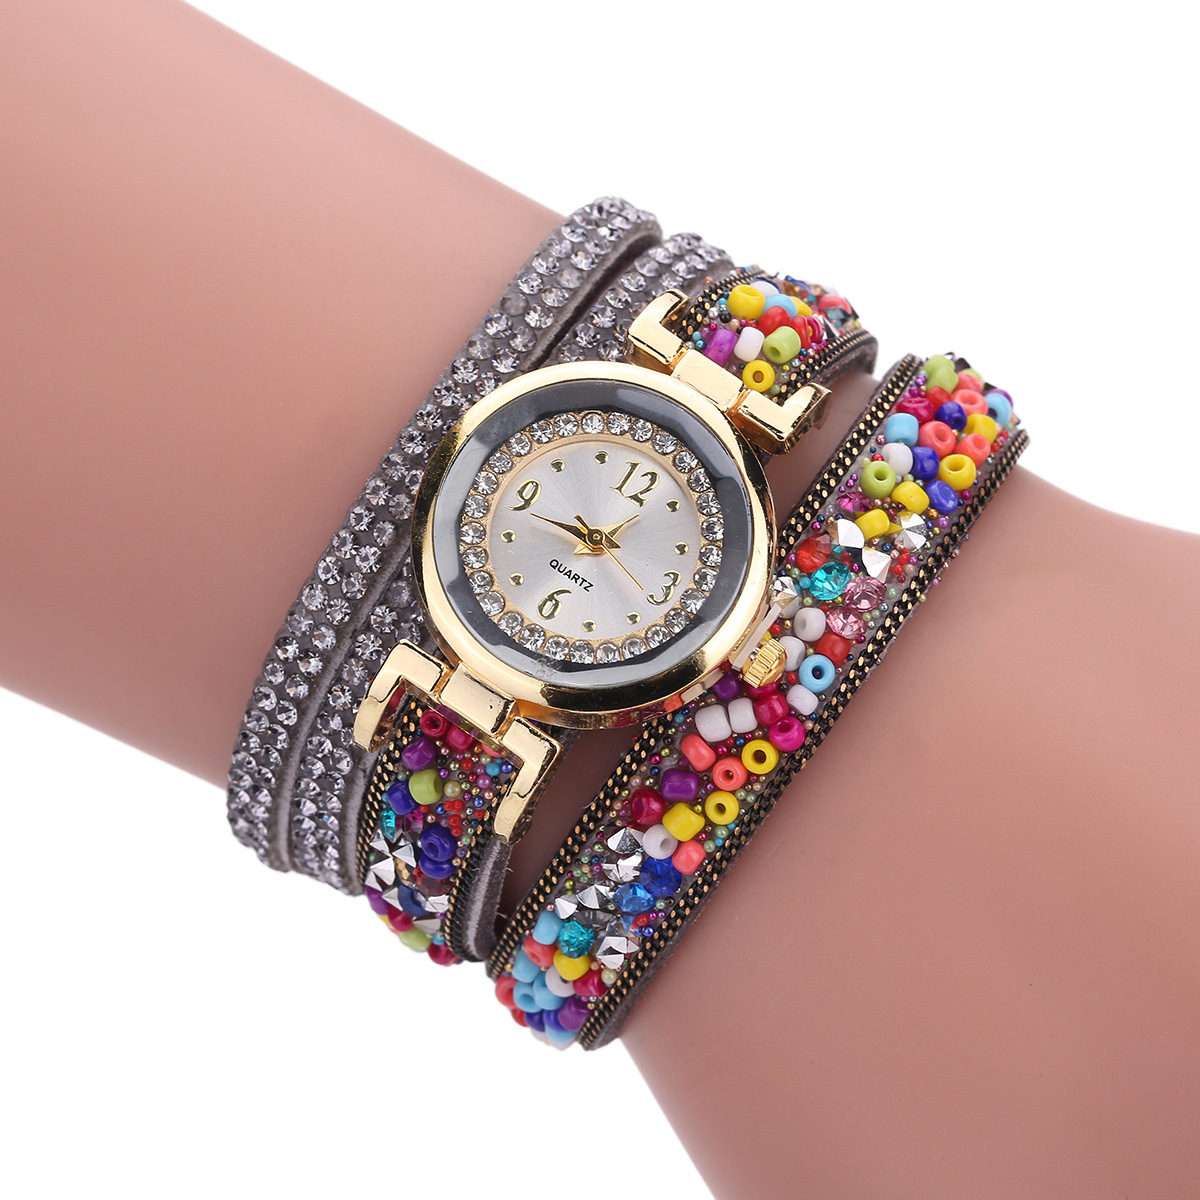 Fashion Luxury Leather Watch Women Classic Crystal Decor Bracelet Watch Ladies Cheap Quartz Watch Ceasuri Women reloj mujer